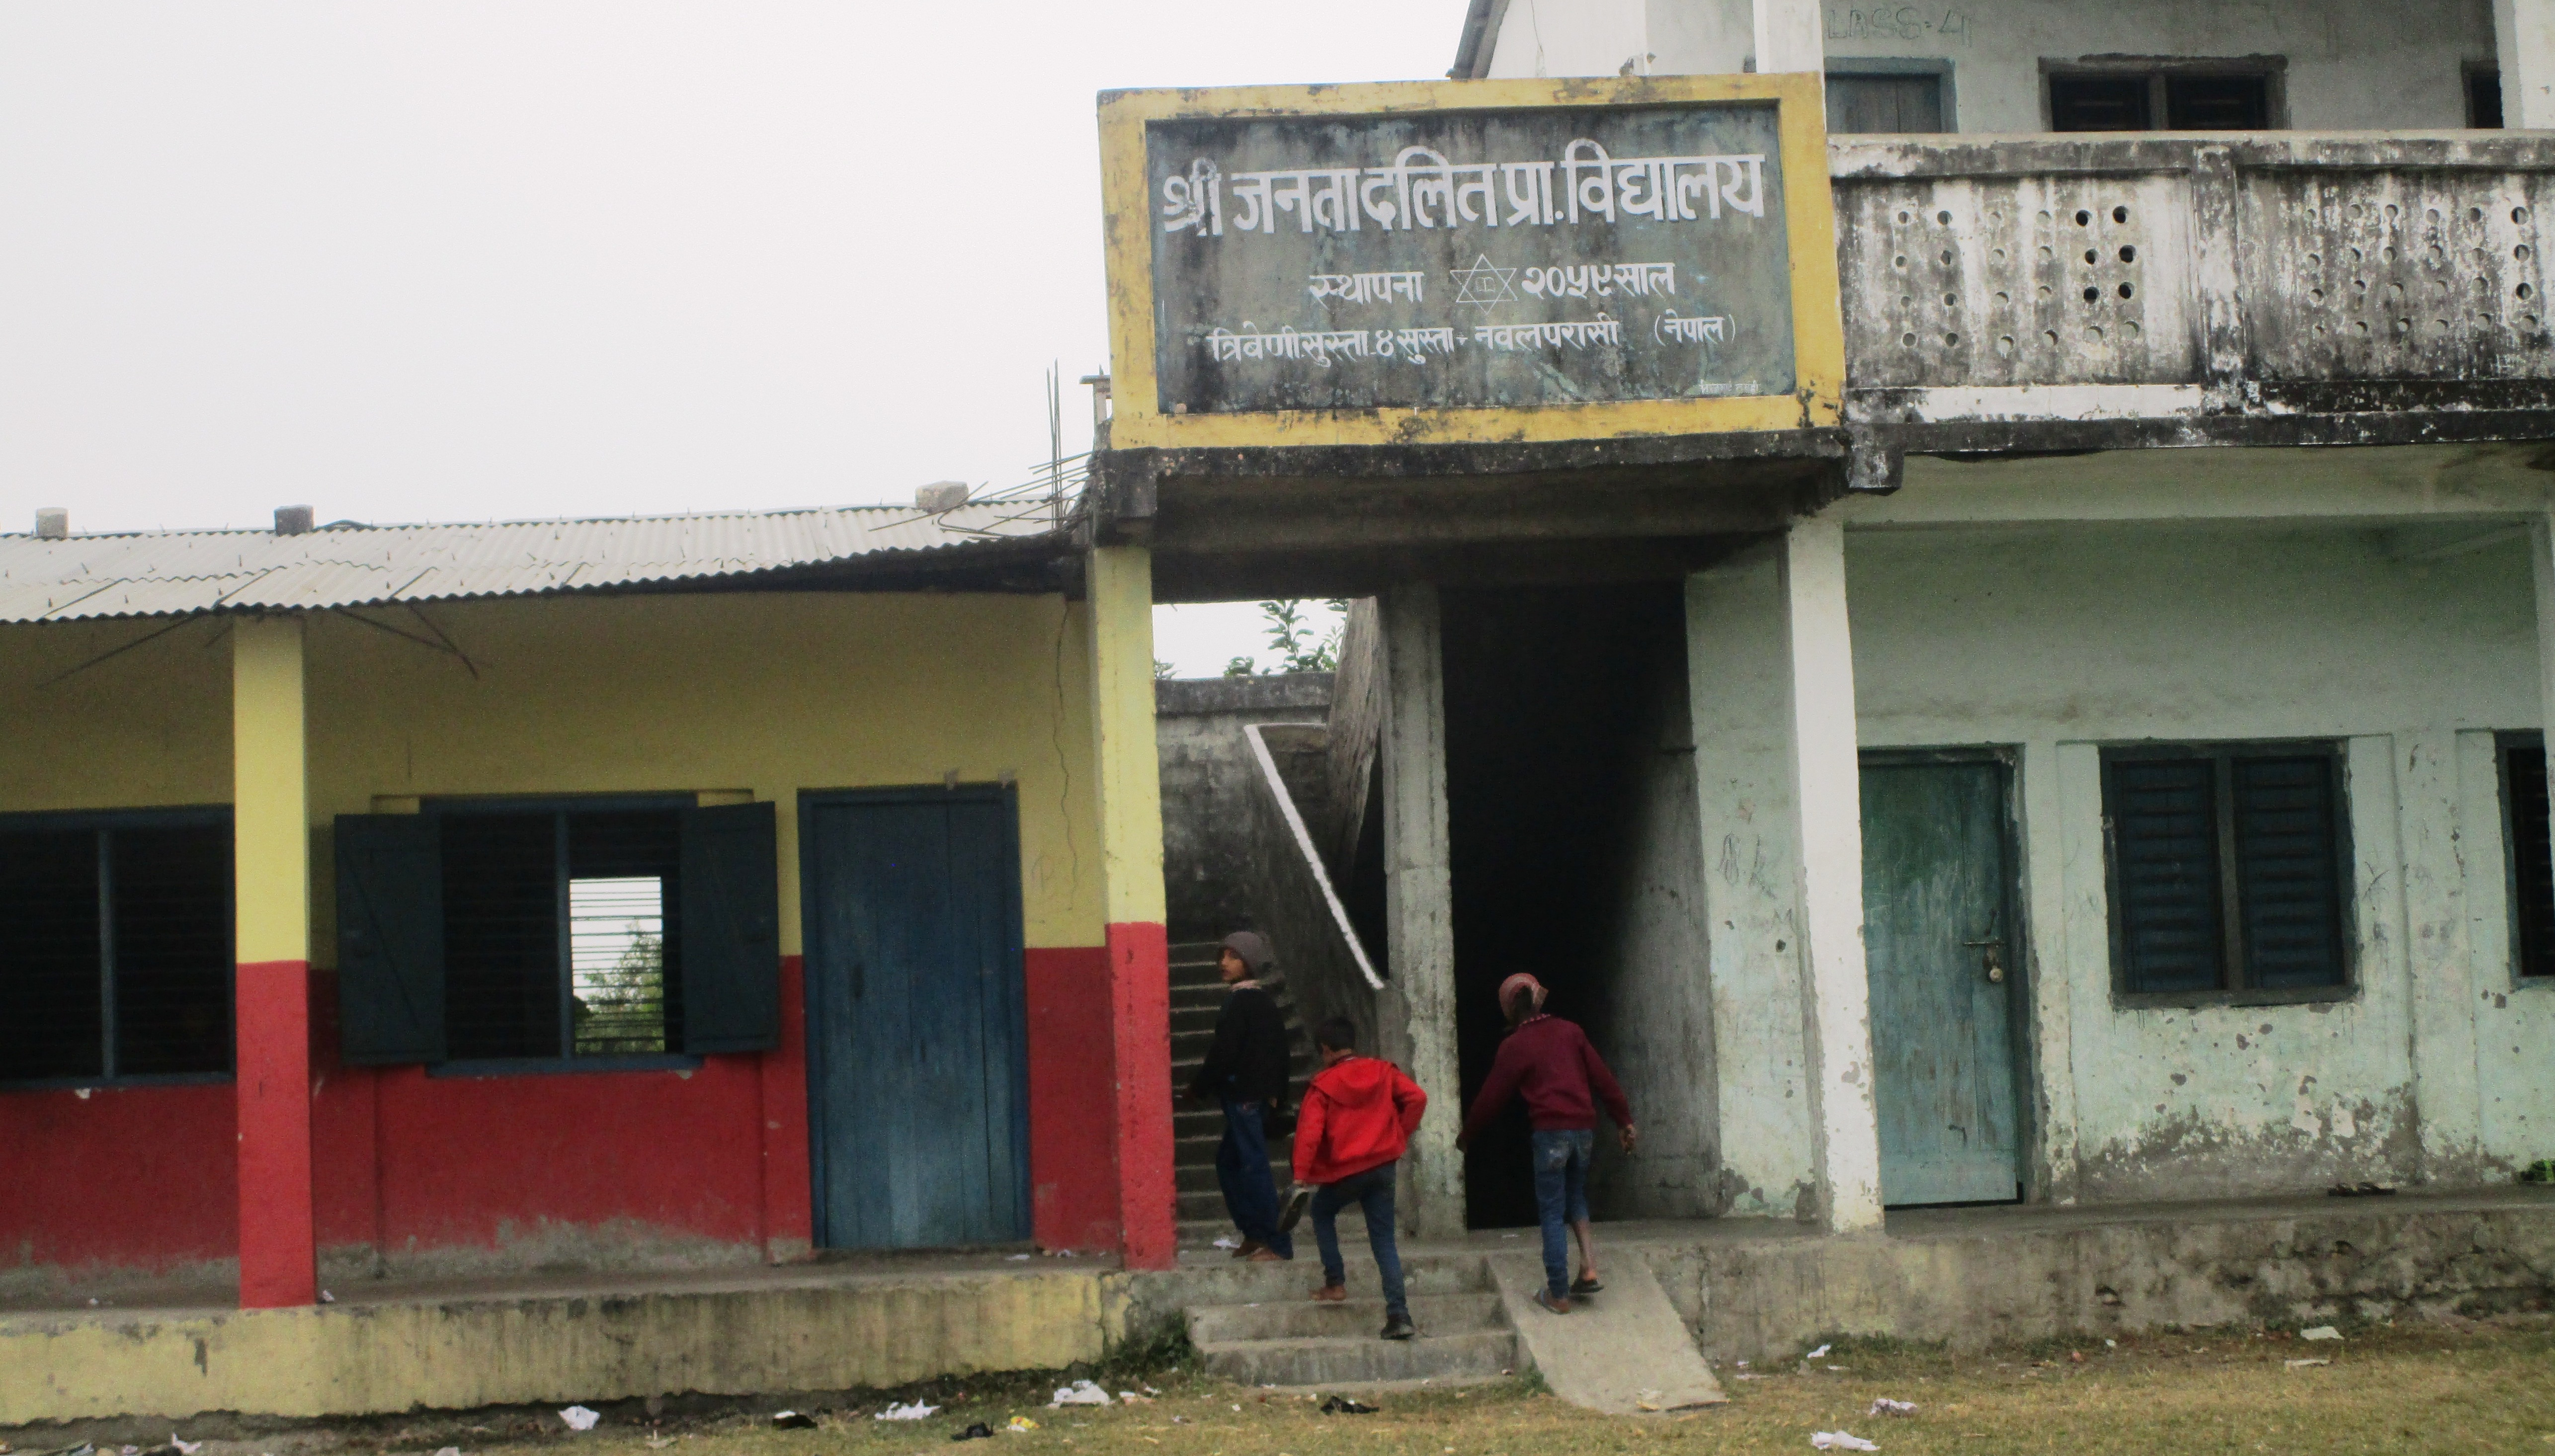 Shri Janta Dalit Primary School, the only school in Susta, whose painted wall reads Nawalparasi, Nepal.